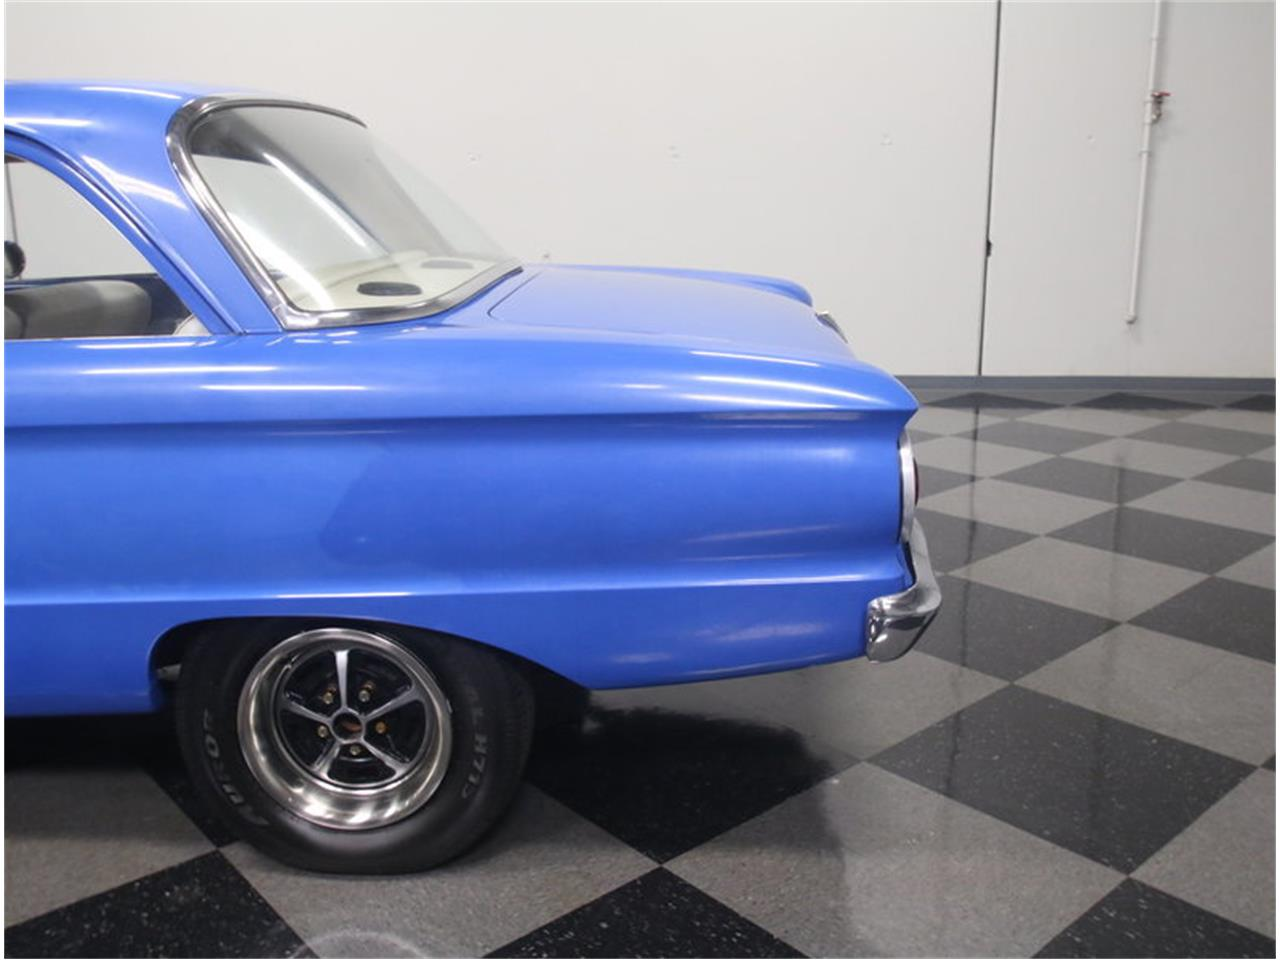 Large Picture of '62 Ford Falcon - $14,995.00 Offered by Streetside Classics - Atlanta - MH3Z